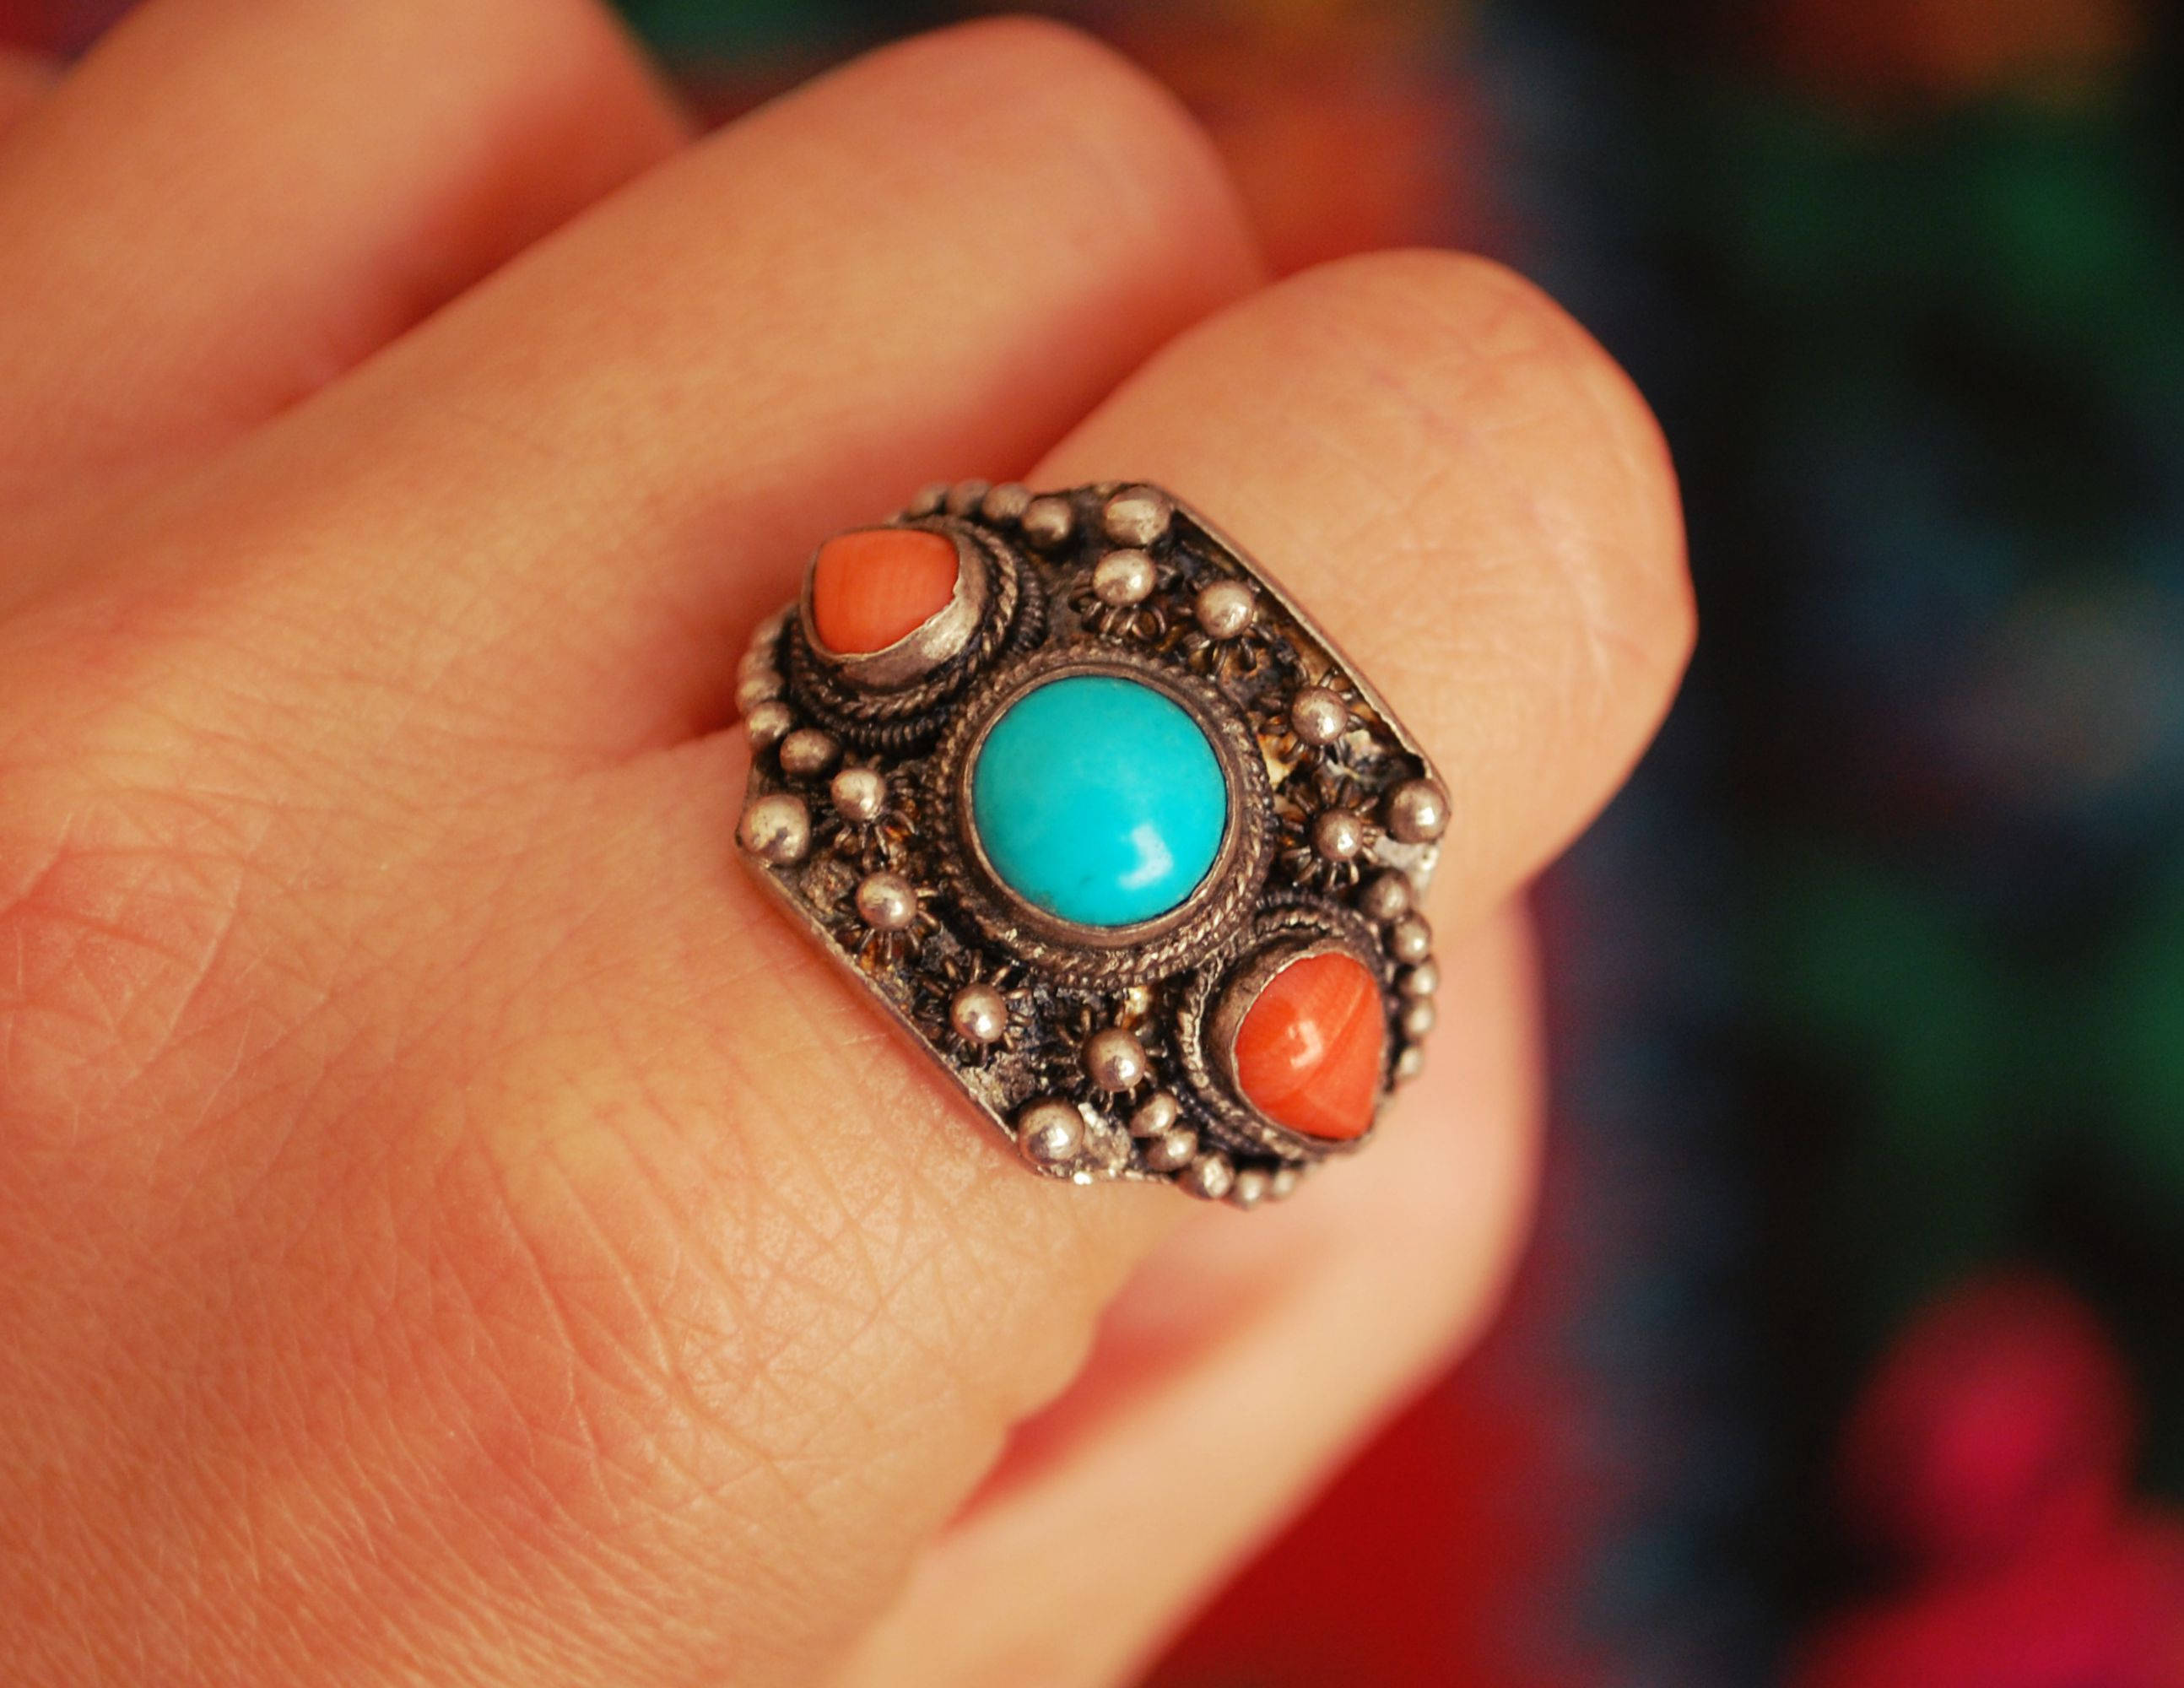 Antique Chinese Coral and Turquoise Ring - Size 9 - Antique Chinese Ring - Ethnic Chinese Ring - Antique Coral Ring - Old Chinese Ring